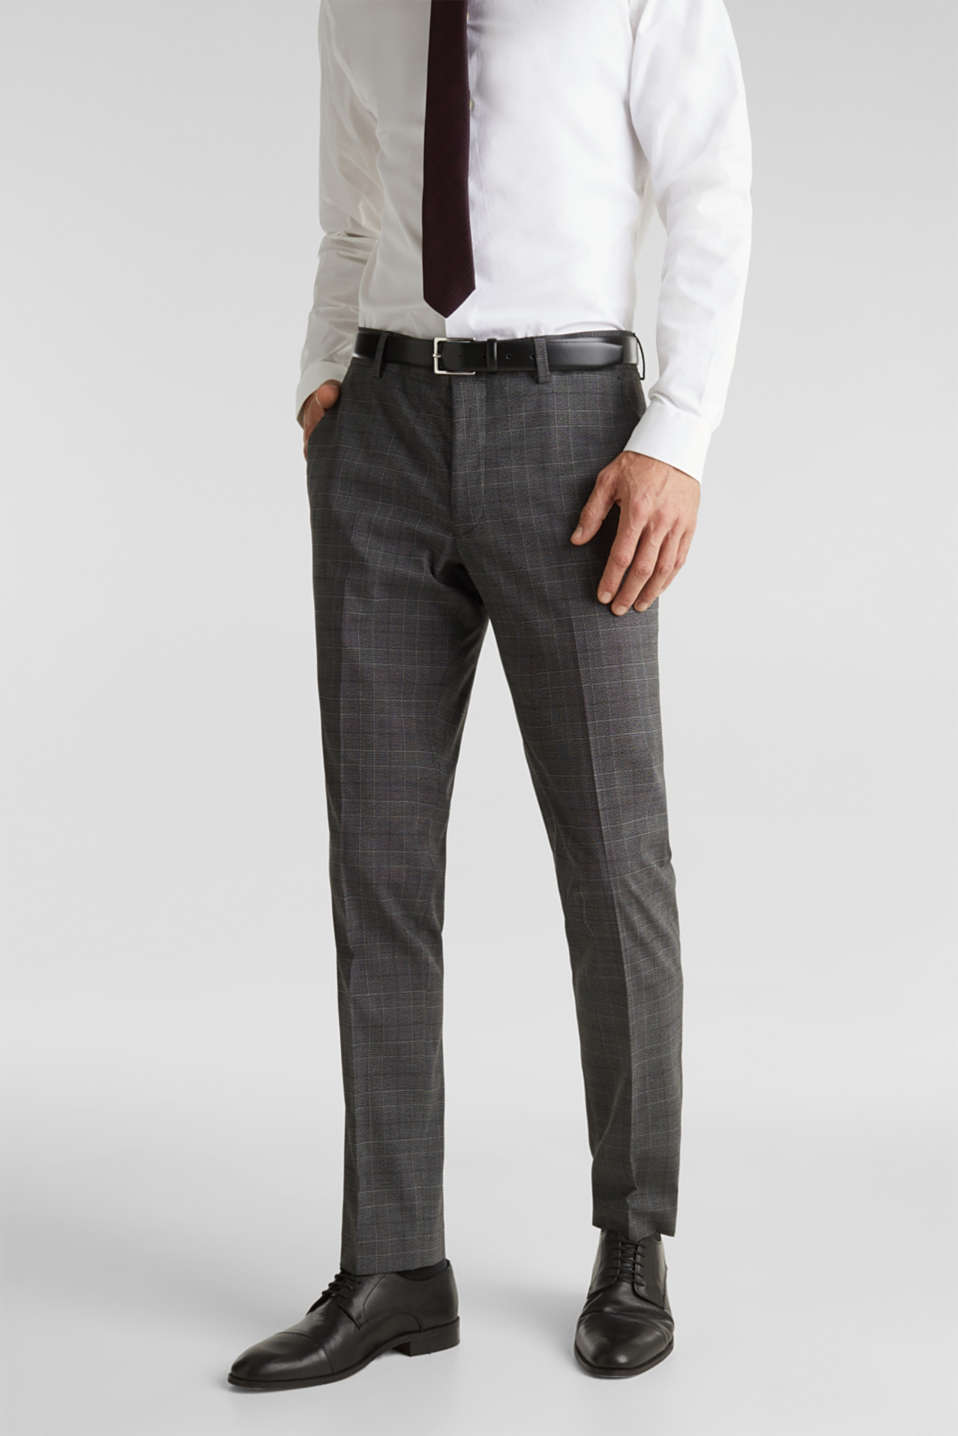 GLENCHECK mix + match: Trousers with Prince of Wales check pattern